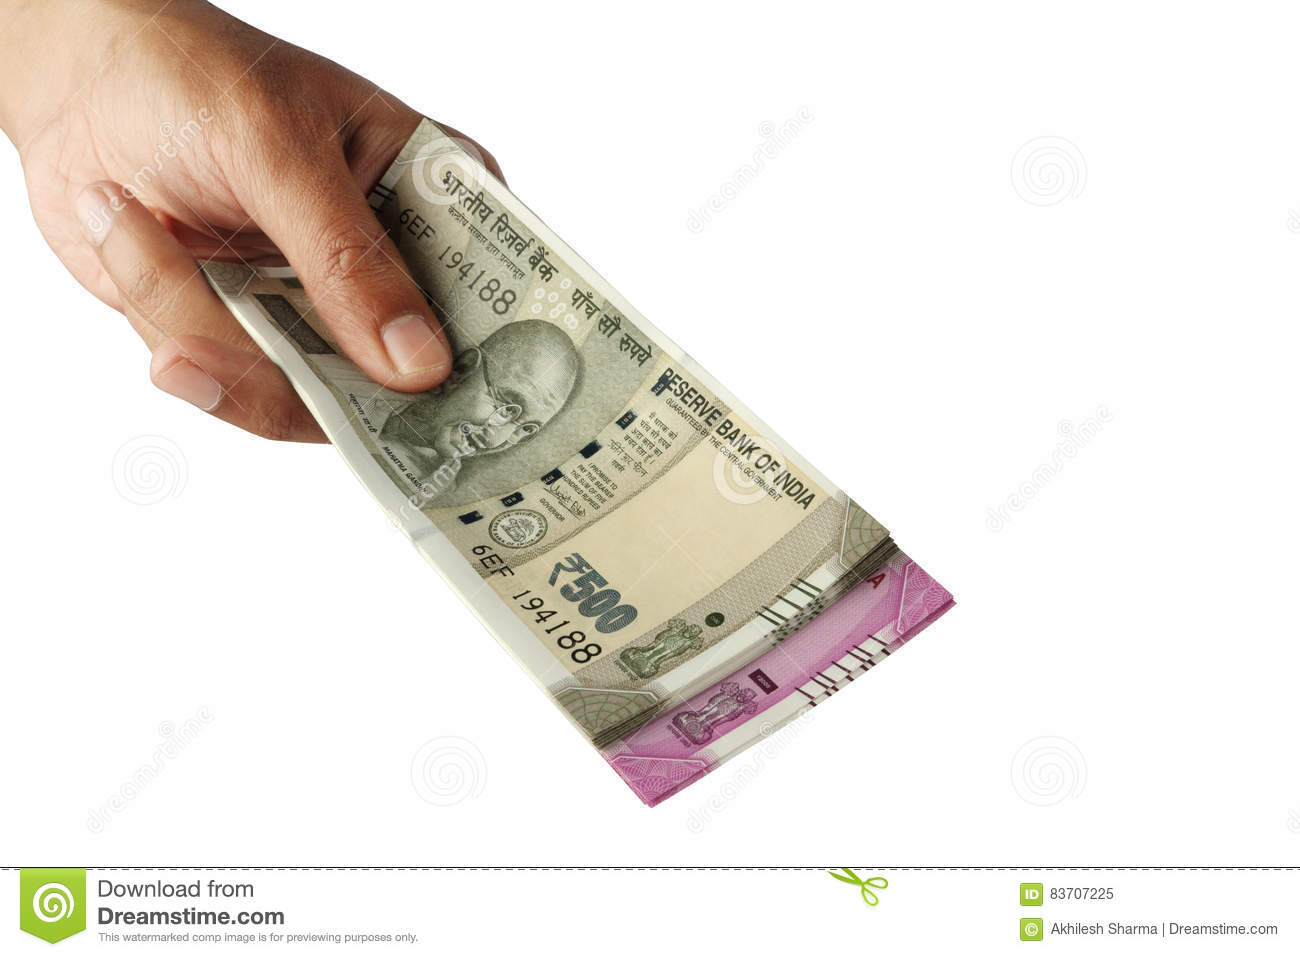 New Indian Rupee Currency Notes In A Hand On White Stock Photo